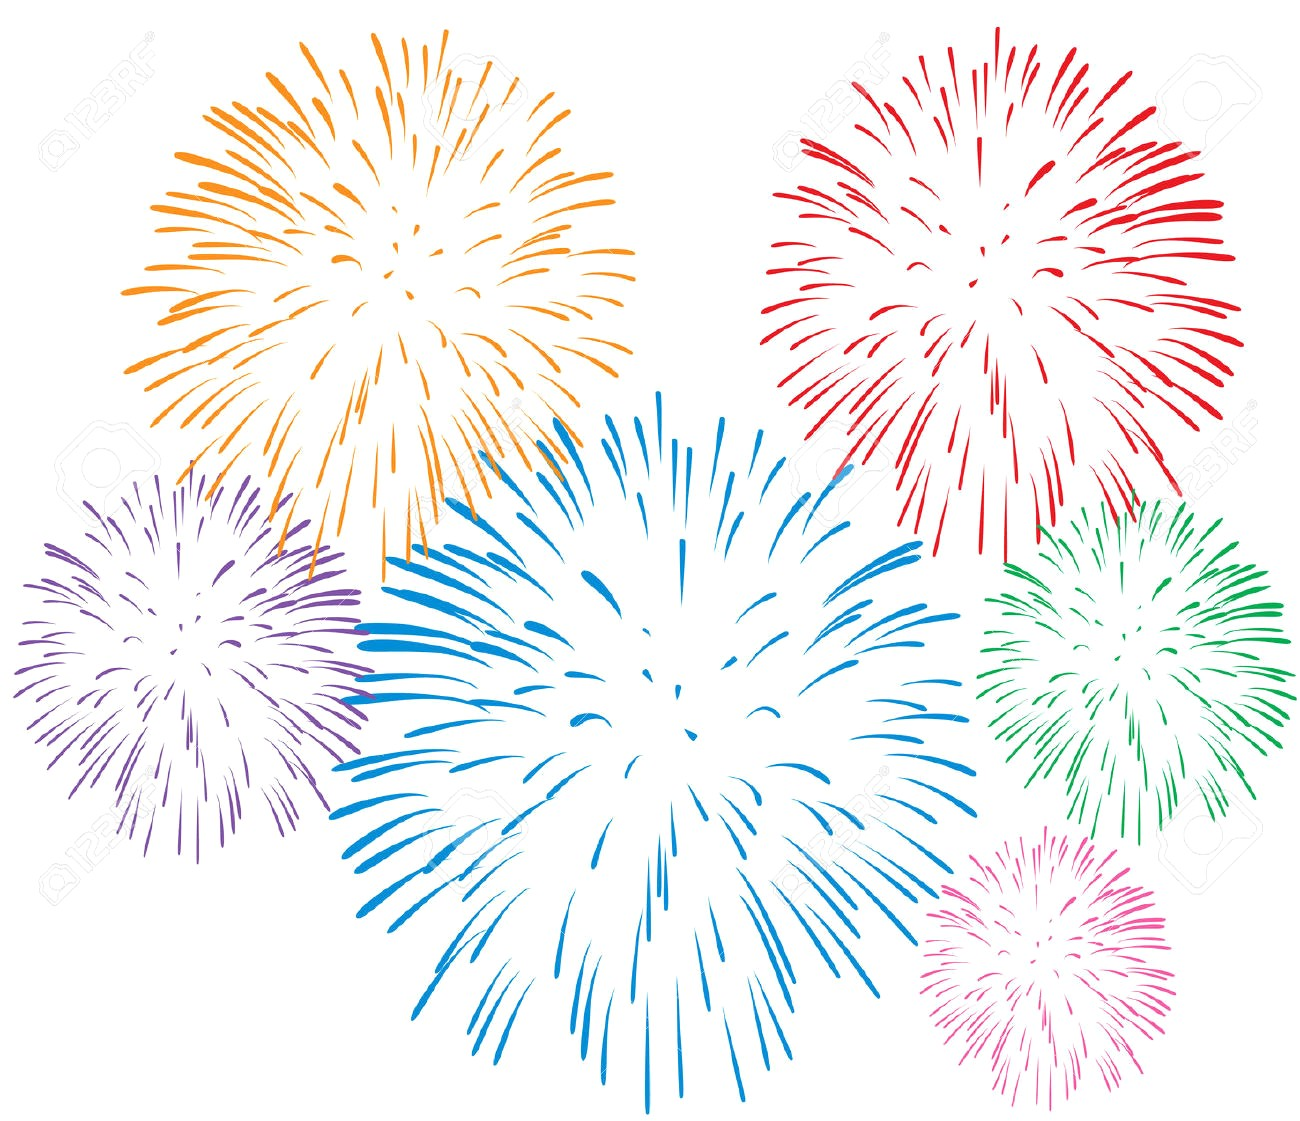 Fireworks clipart transparent background 1 » Clipart Station.